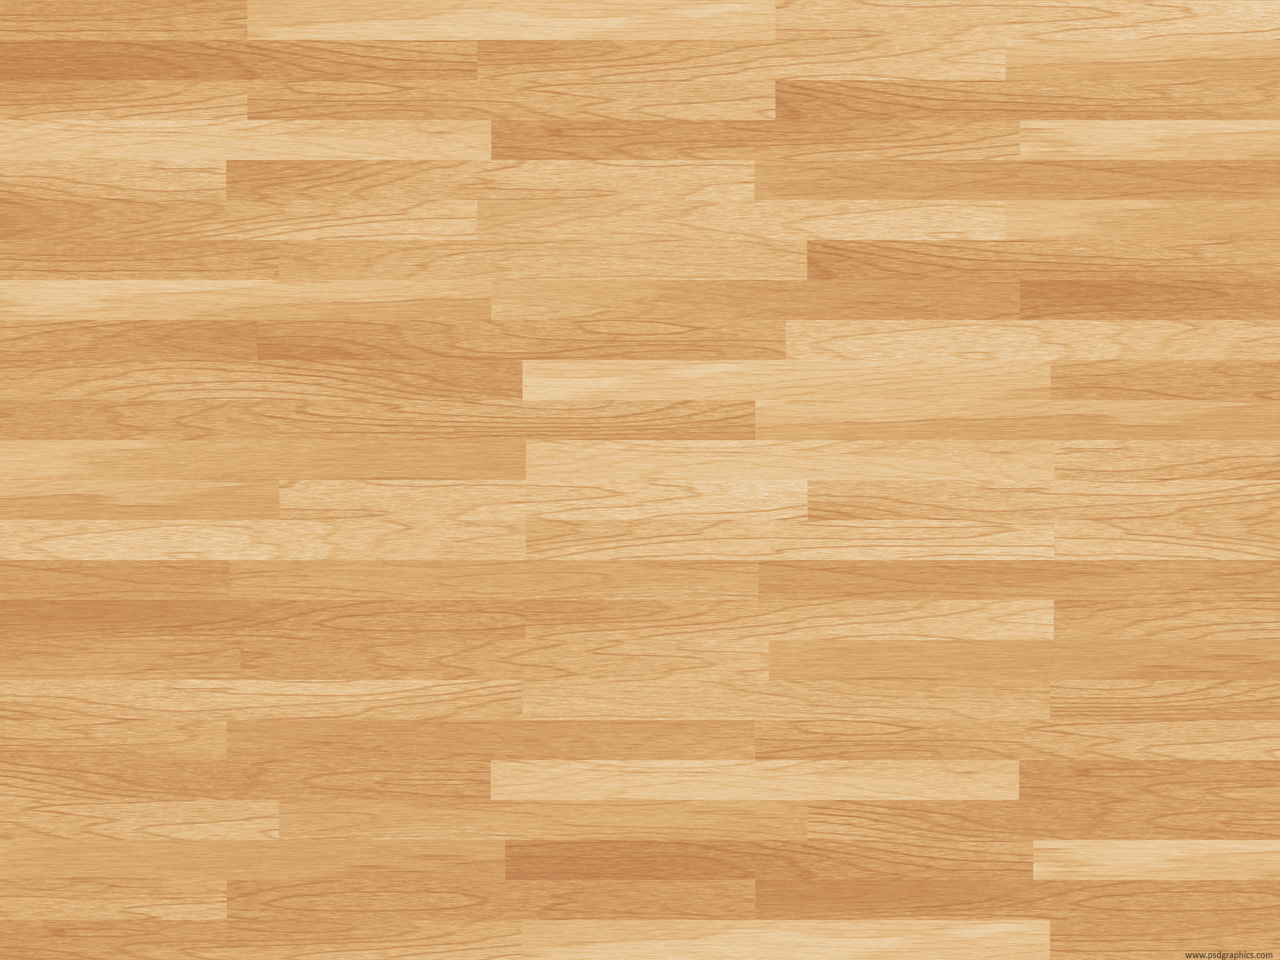 Wood floor texture wallpaper 1280x960 55883 for Hardwood wood flooring